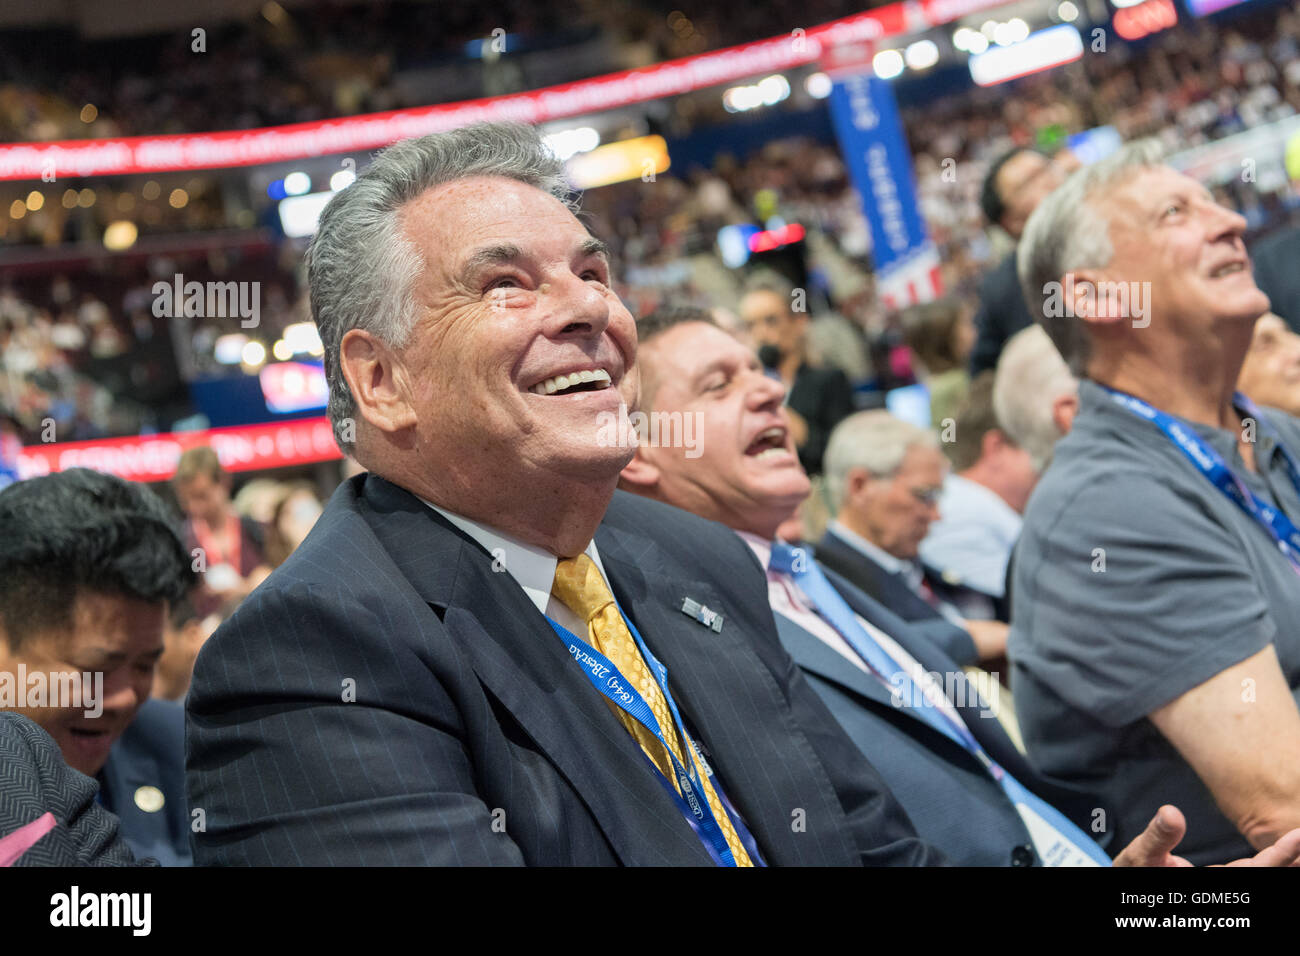 Cleveland, Ohio, USA. 19th July, 2016. Congressman Pete King of New York smiles during the nomination process for - Stock Image